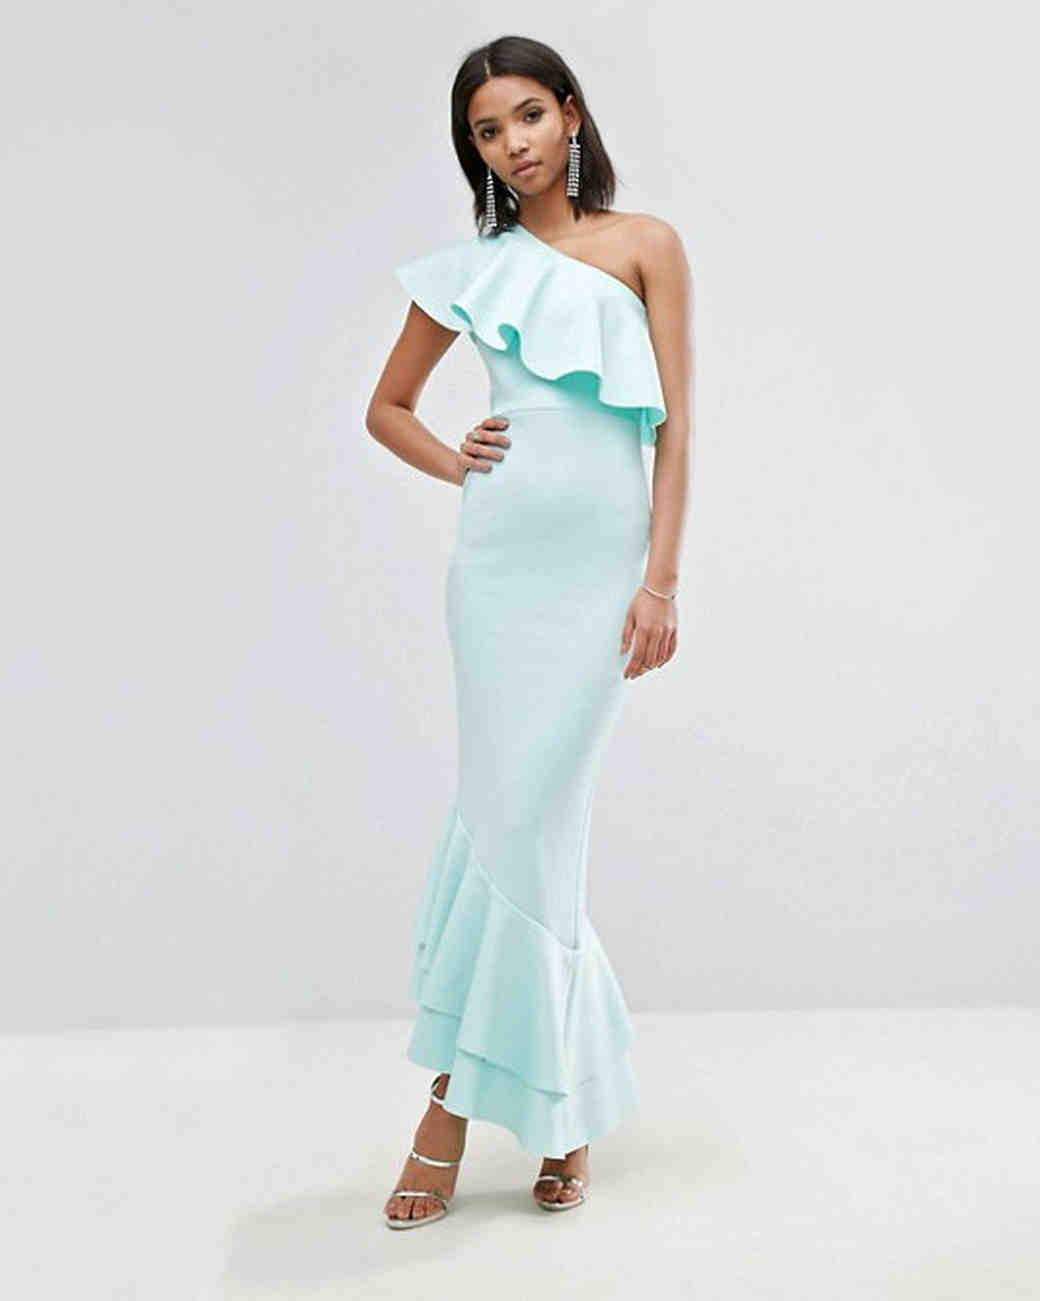 Dresses party for under 100 forecasting dress for spring in 2019